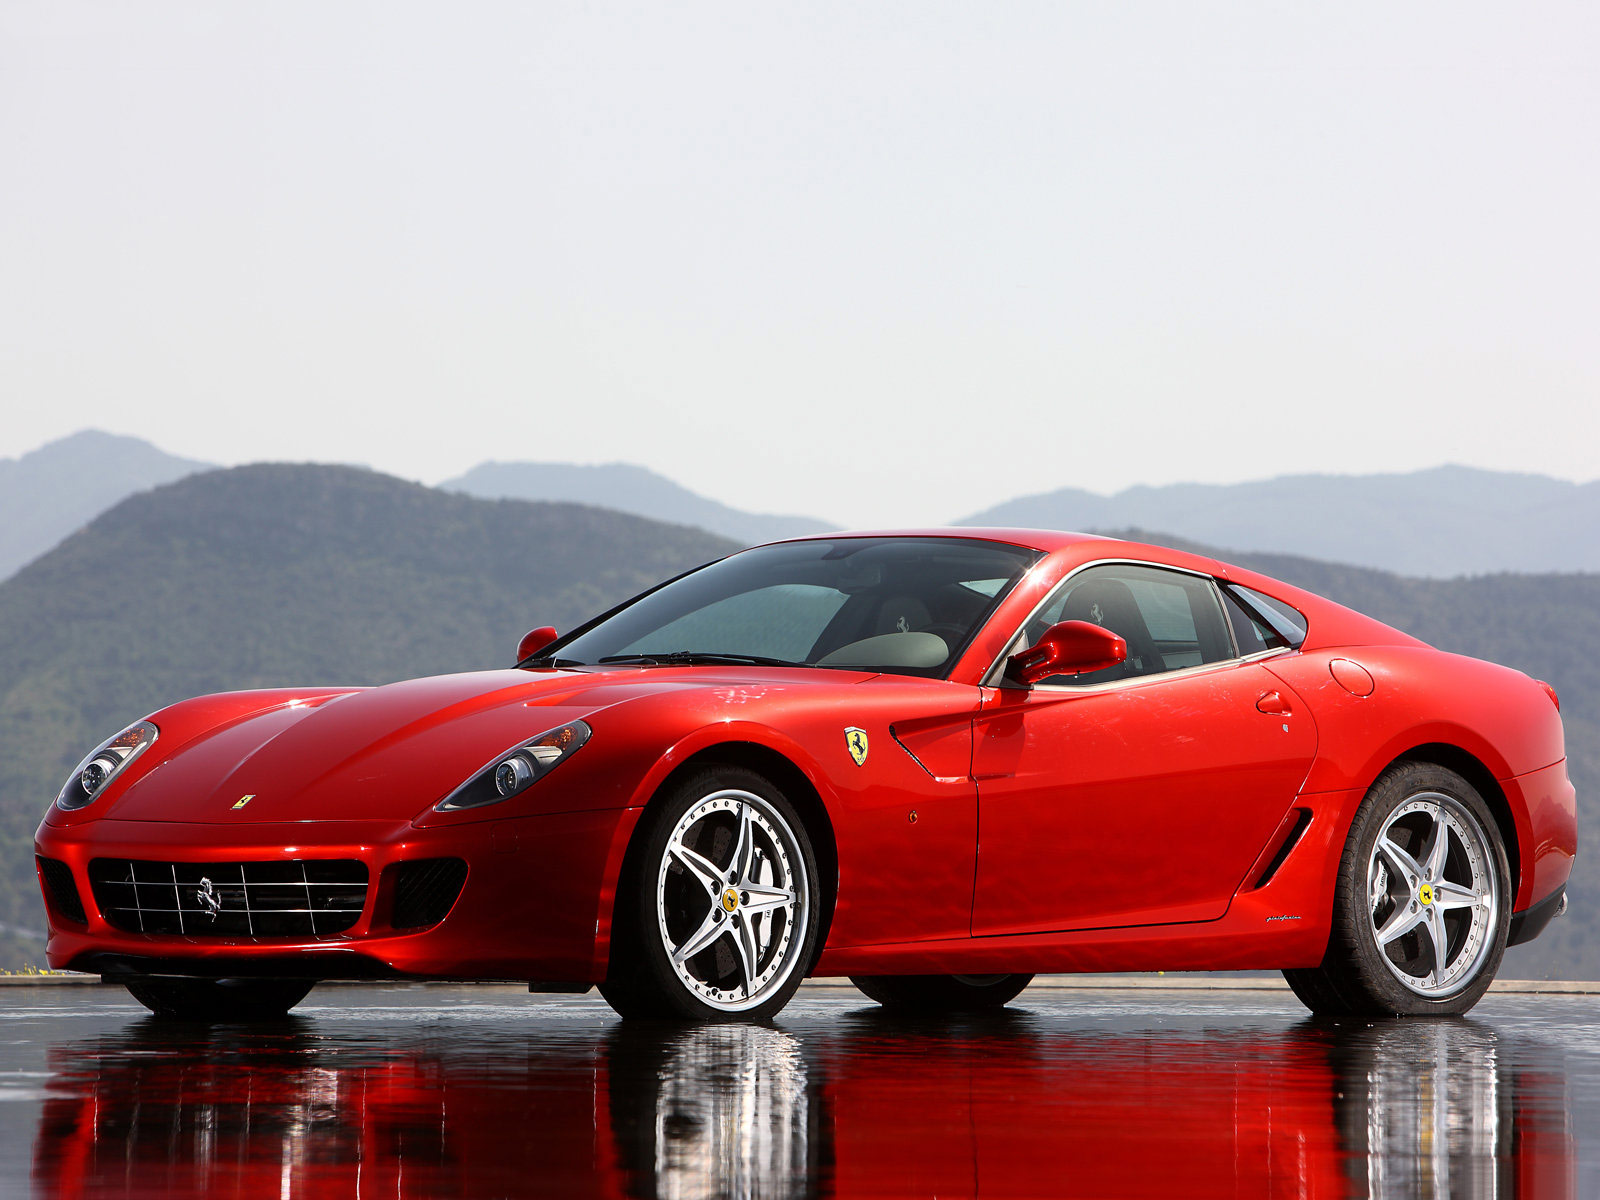 2010 ferrari 599 gtb fiorano hgte car wallpapers when it first debuted the ferrari 599 gtb fiorano set a new standard in terms of performance vanachro Image collections